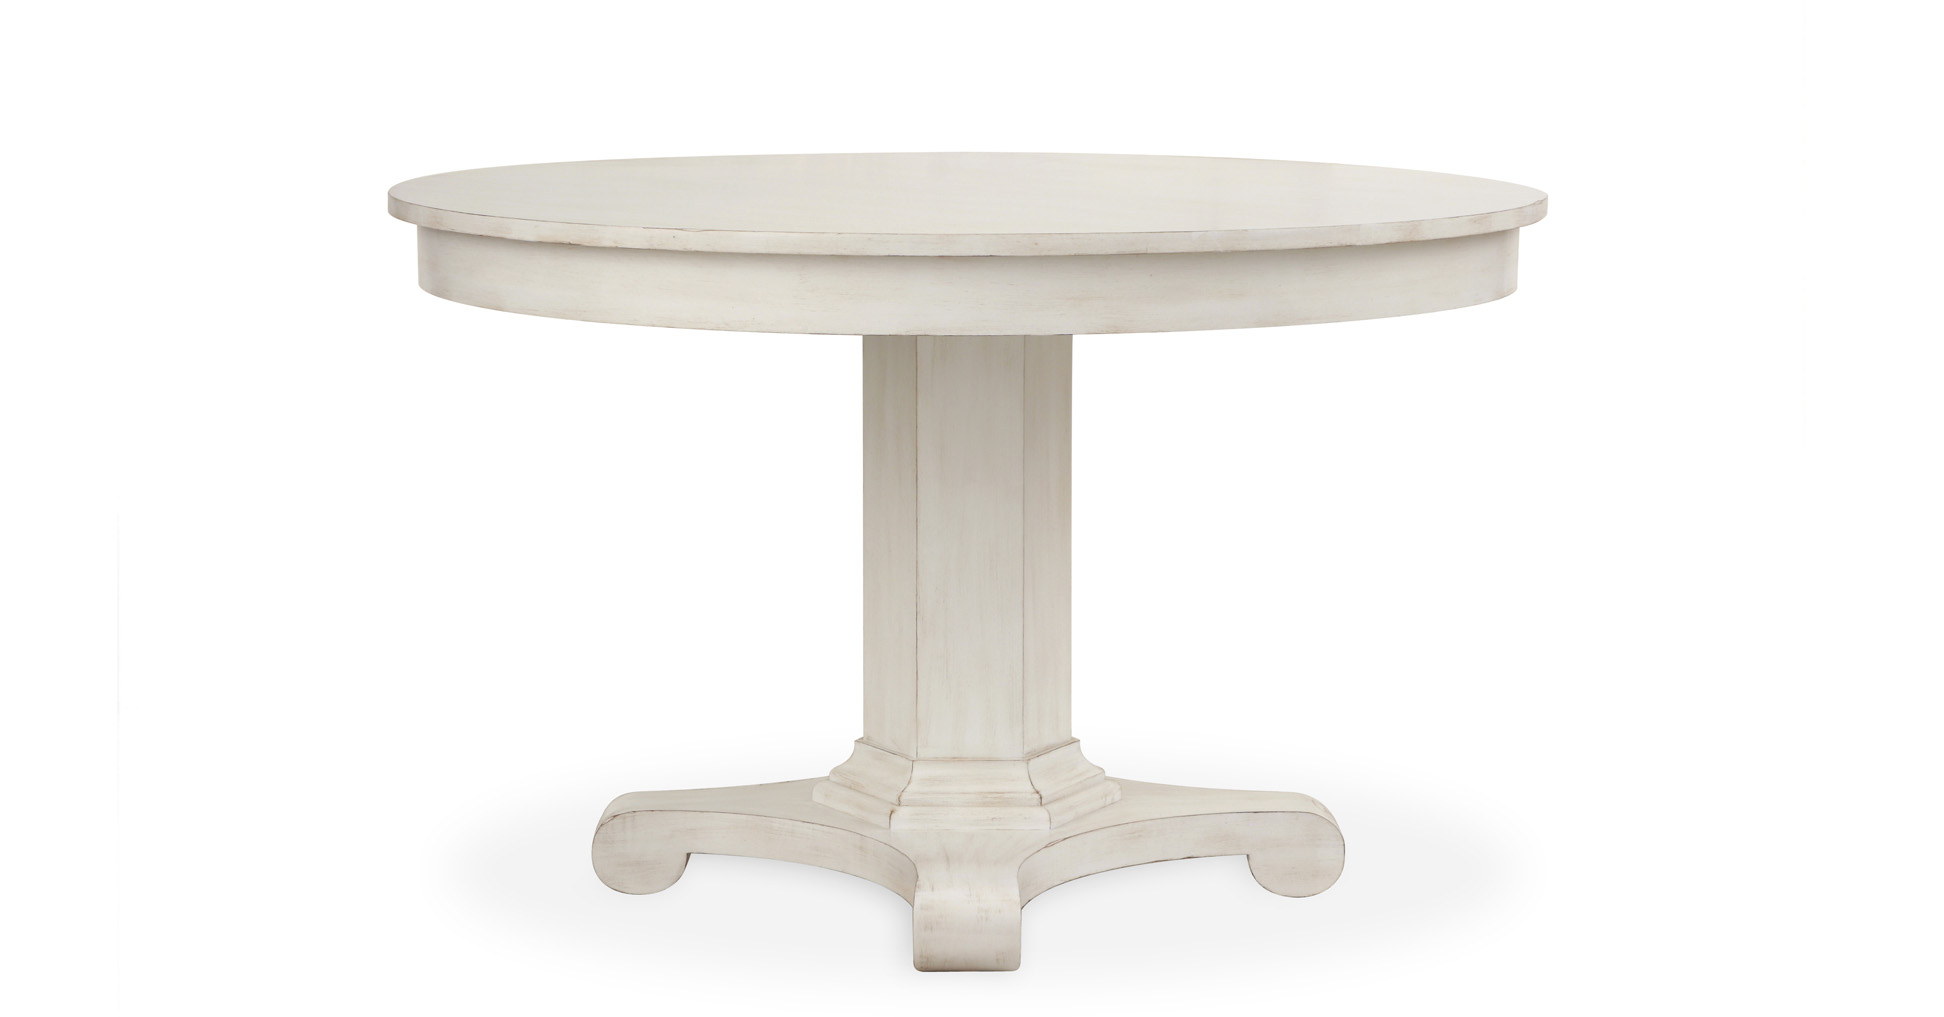 Inspirational Round Dining Table For Sale Light Of Dining Room